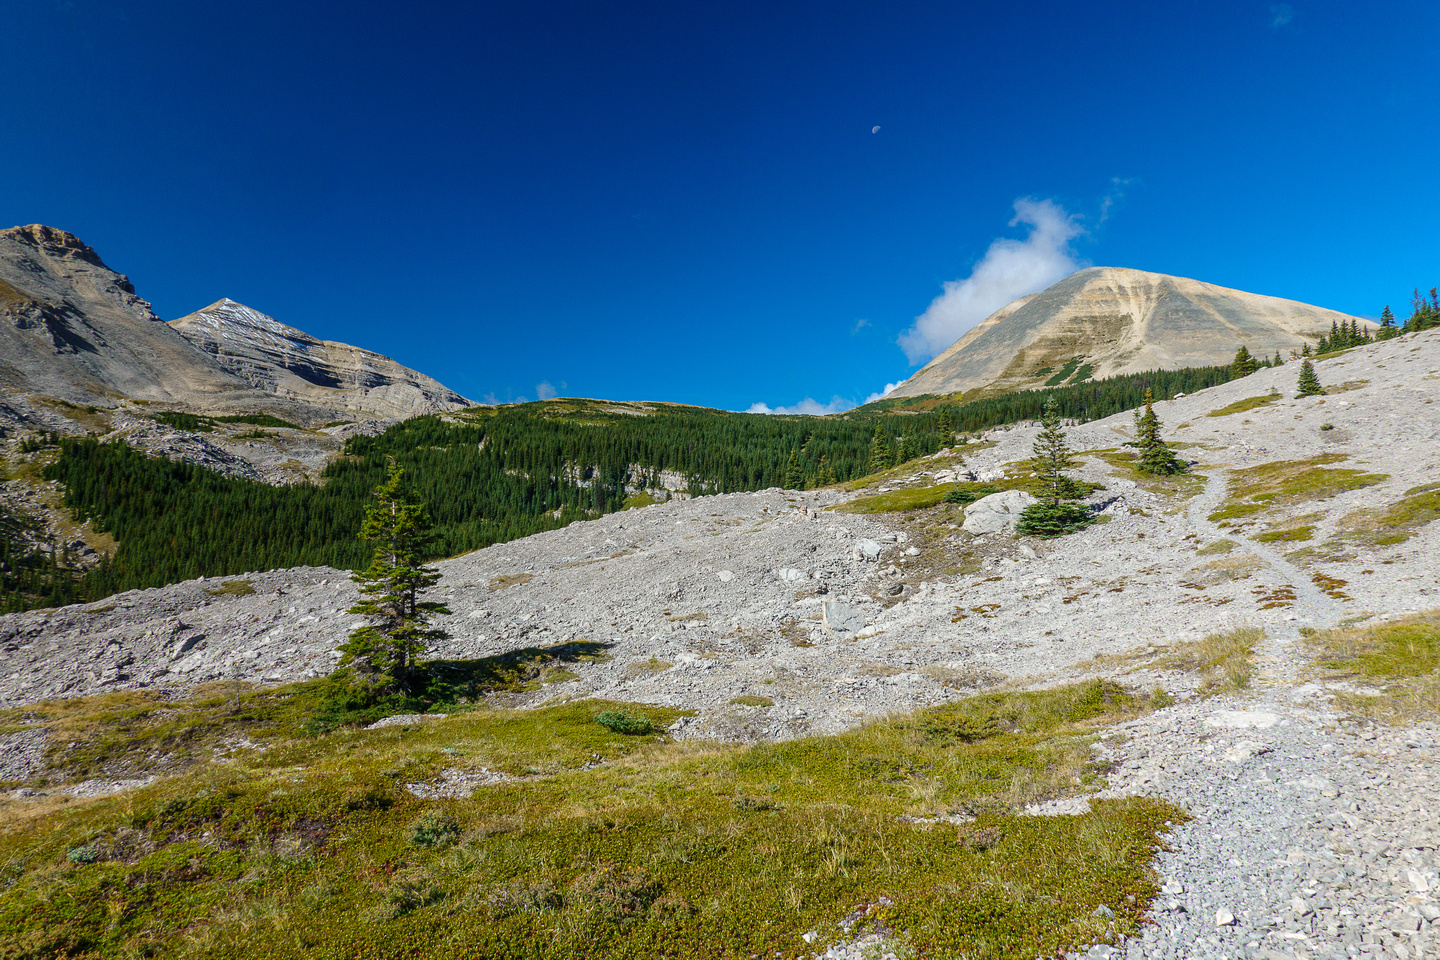 Hiking up to Fording River Pass.